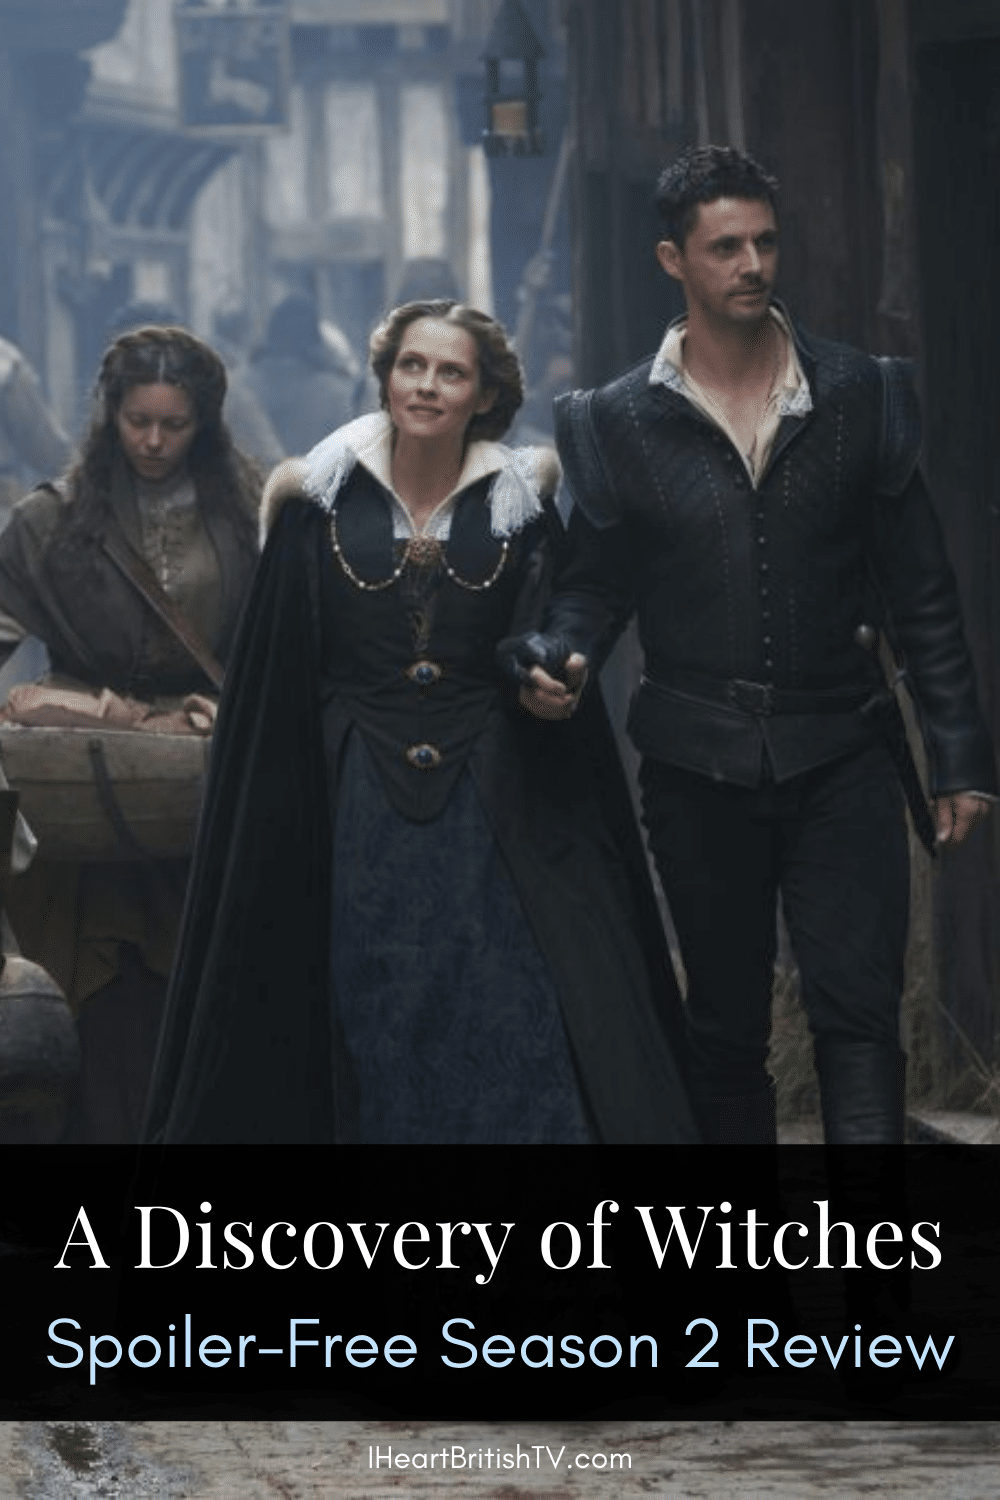 A Discovery of Witches Season 2 Spoiler-Free Review 3